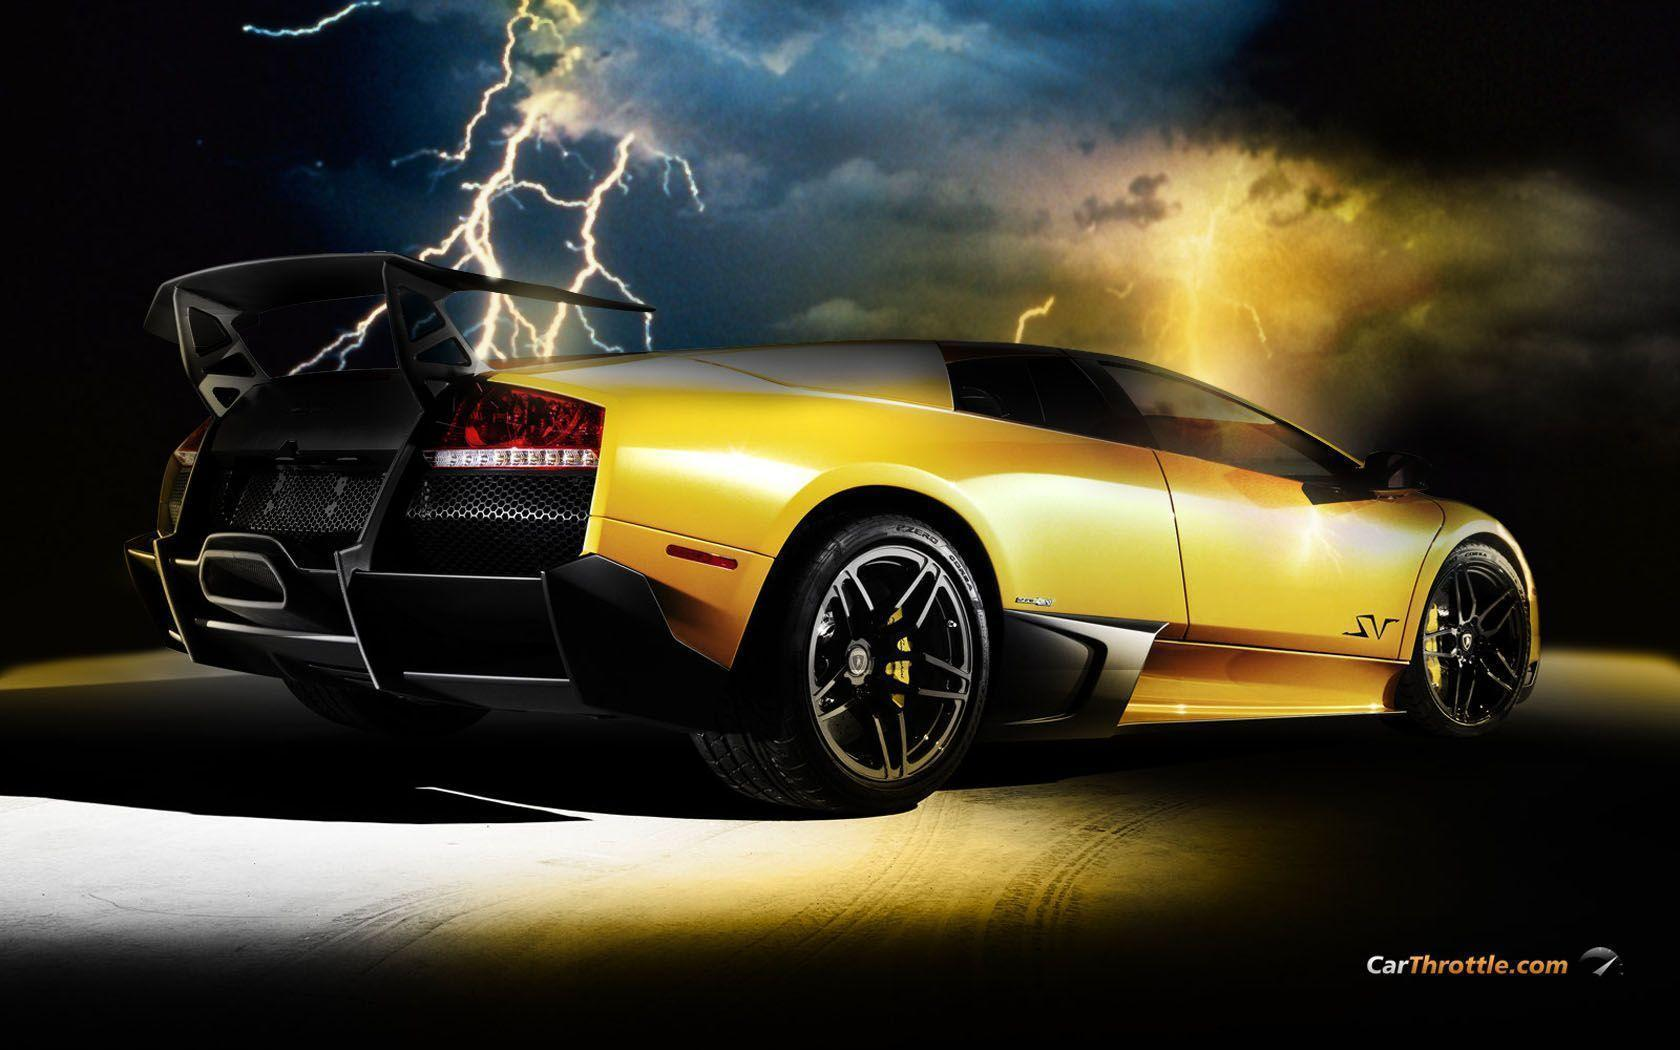 Wallpapers For > Awesome Lamborghini Wallpapers